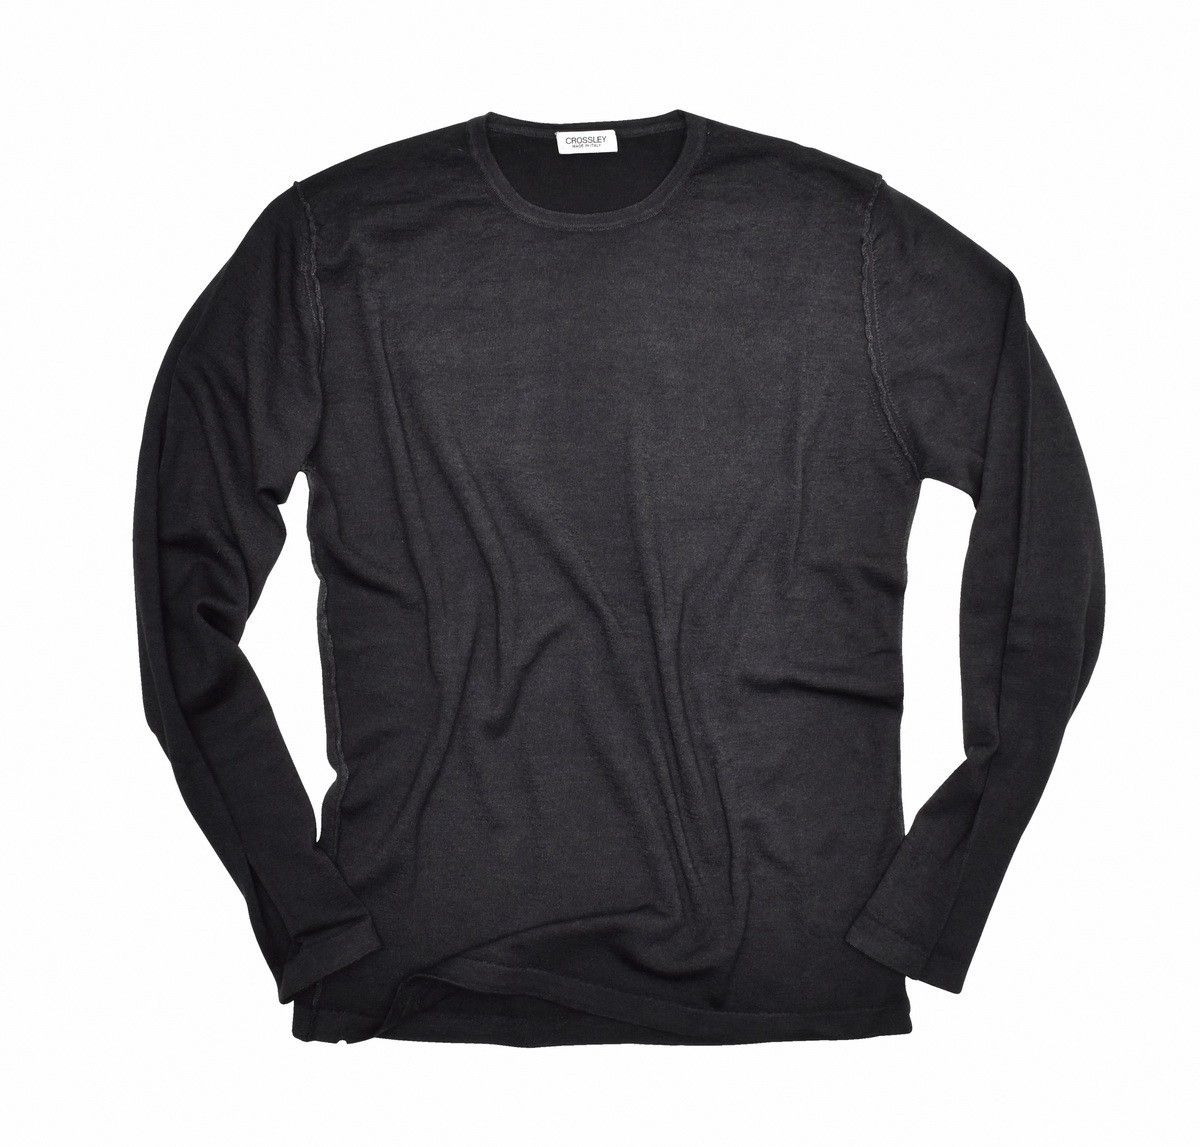 CROSSLEY - Herren Pullover - Haliot - Anthrazit